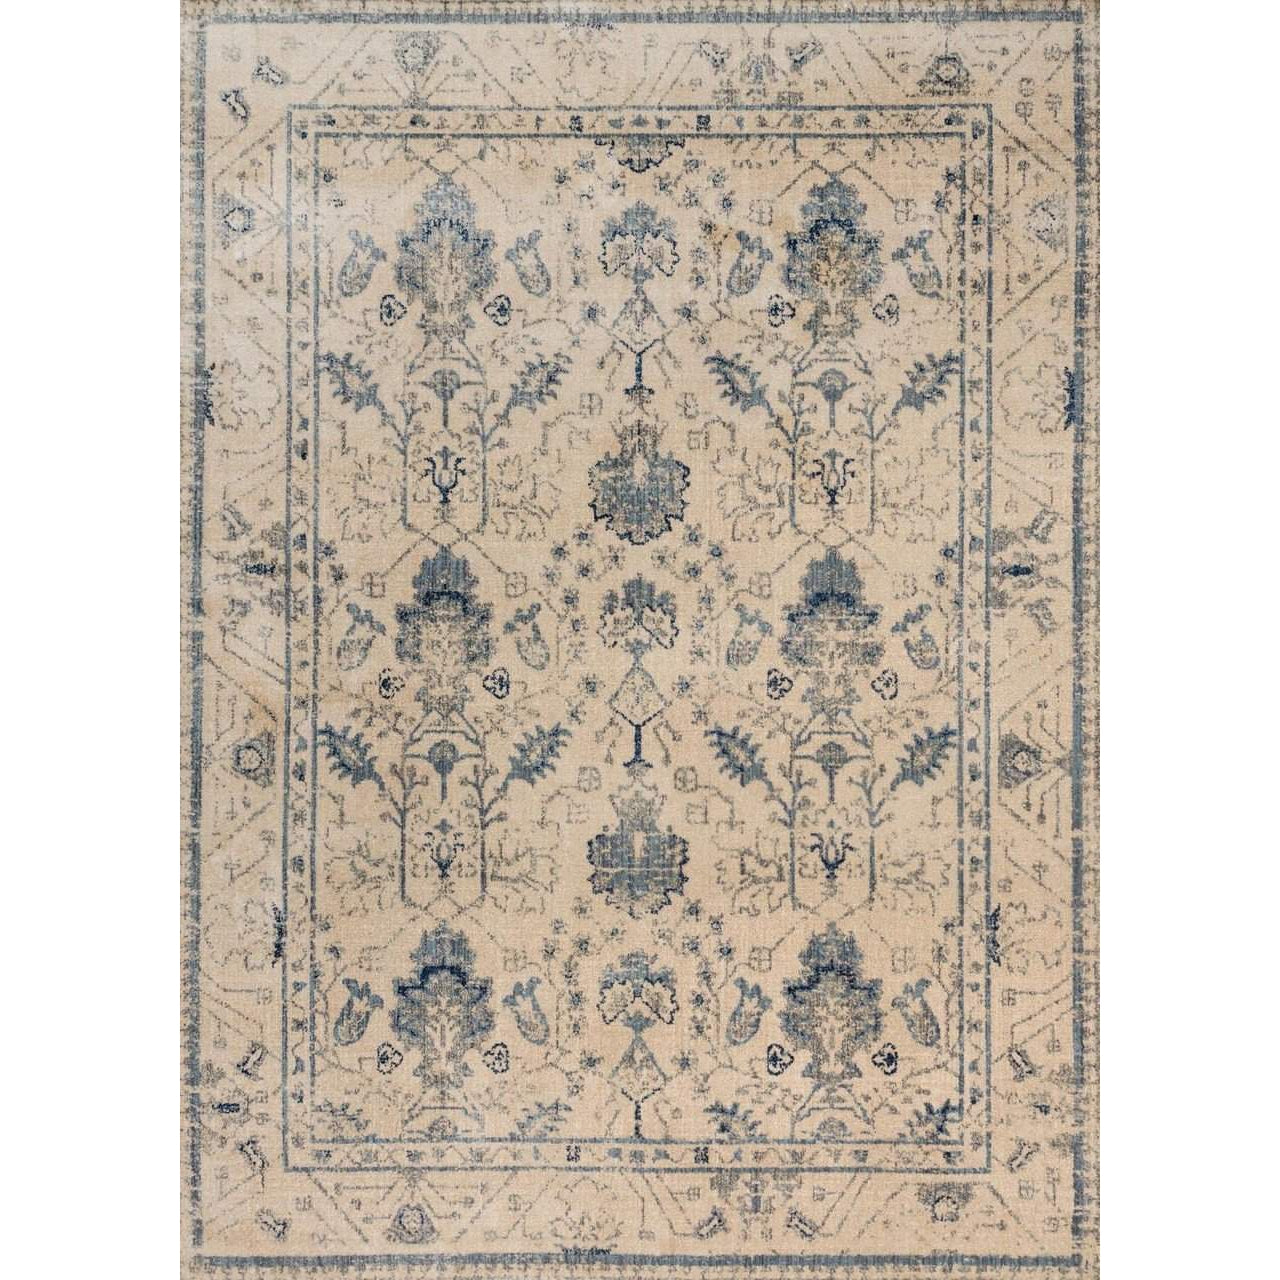 Joanna Gaines Kivi Rug Collection Sand Ocean Joanna